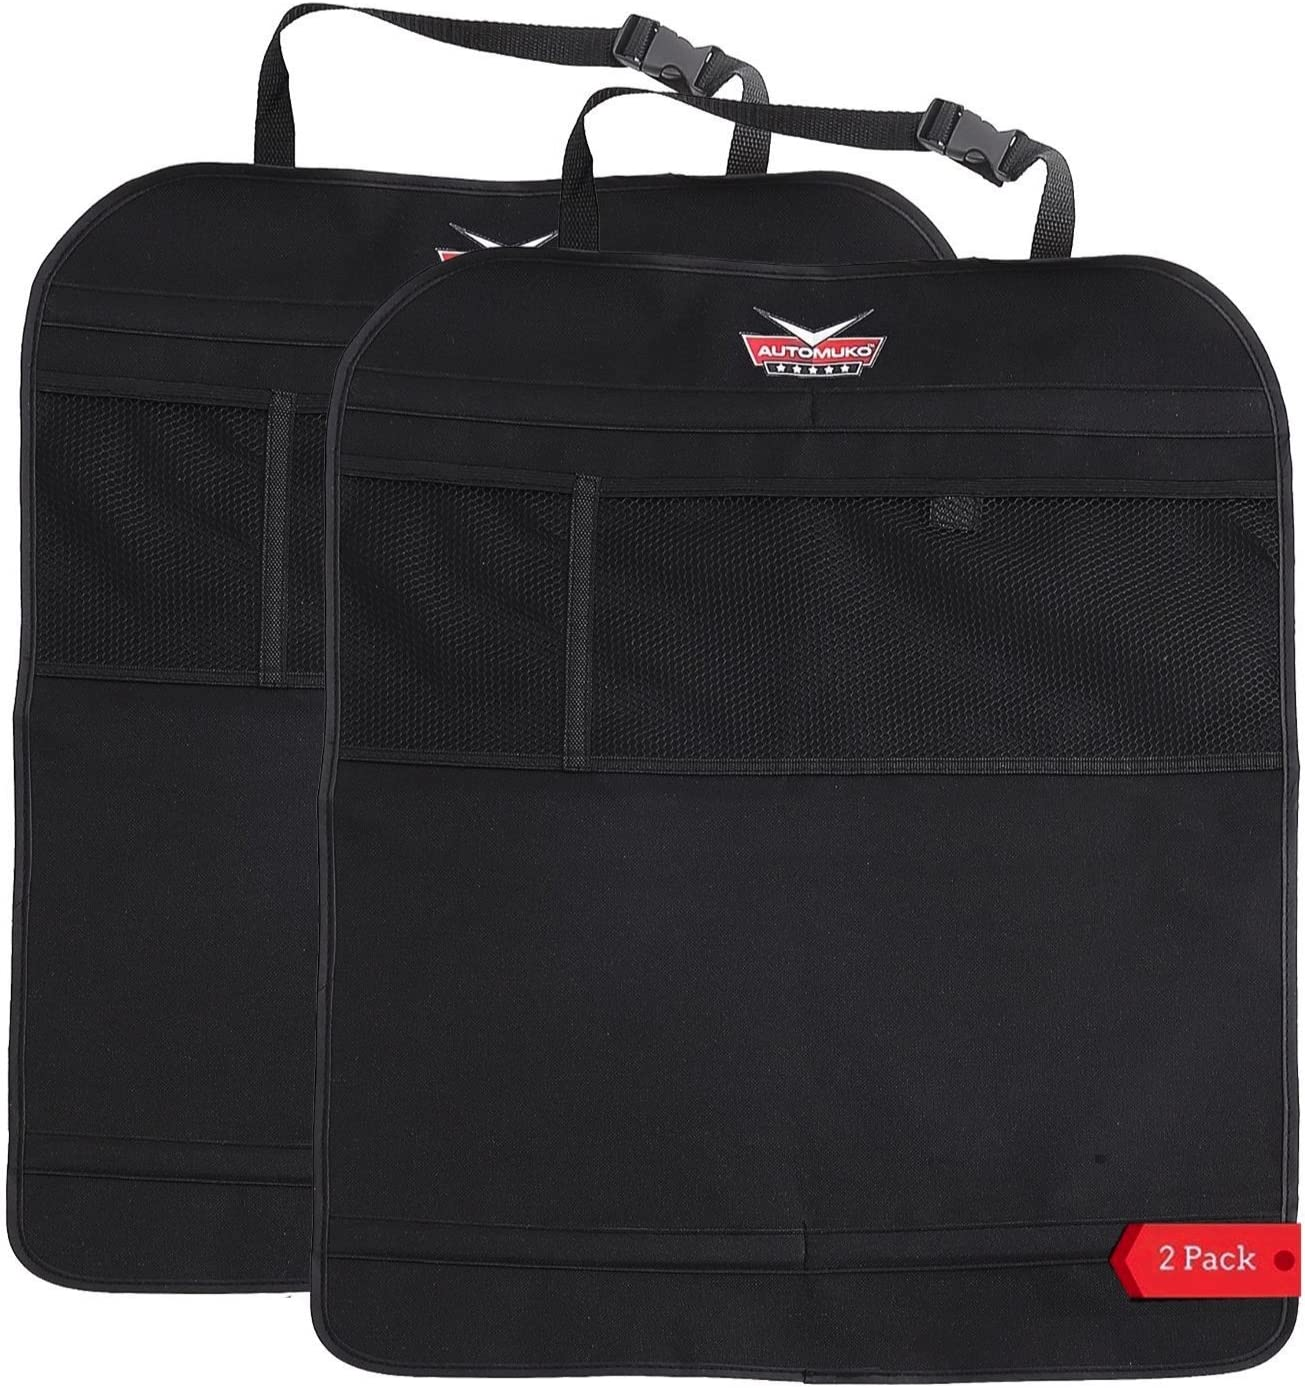 Kick Mats by AutoMuko™ With Organizer - Premium Thick Waterproof Quality Seat Back Protectors - Extra Long Size with Adjustable Straps - Car Seat Back Protectors (2 Pack) - With One-Year Limited Warranty